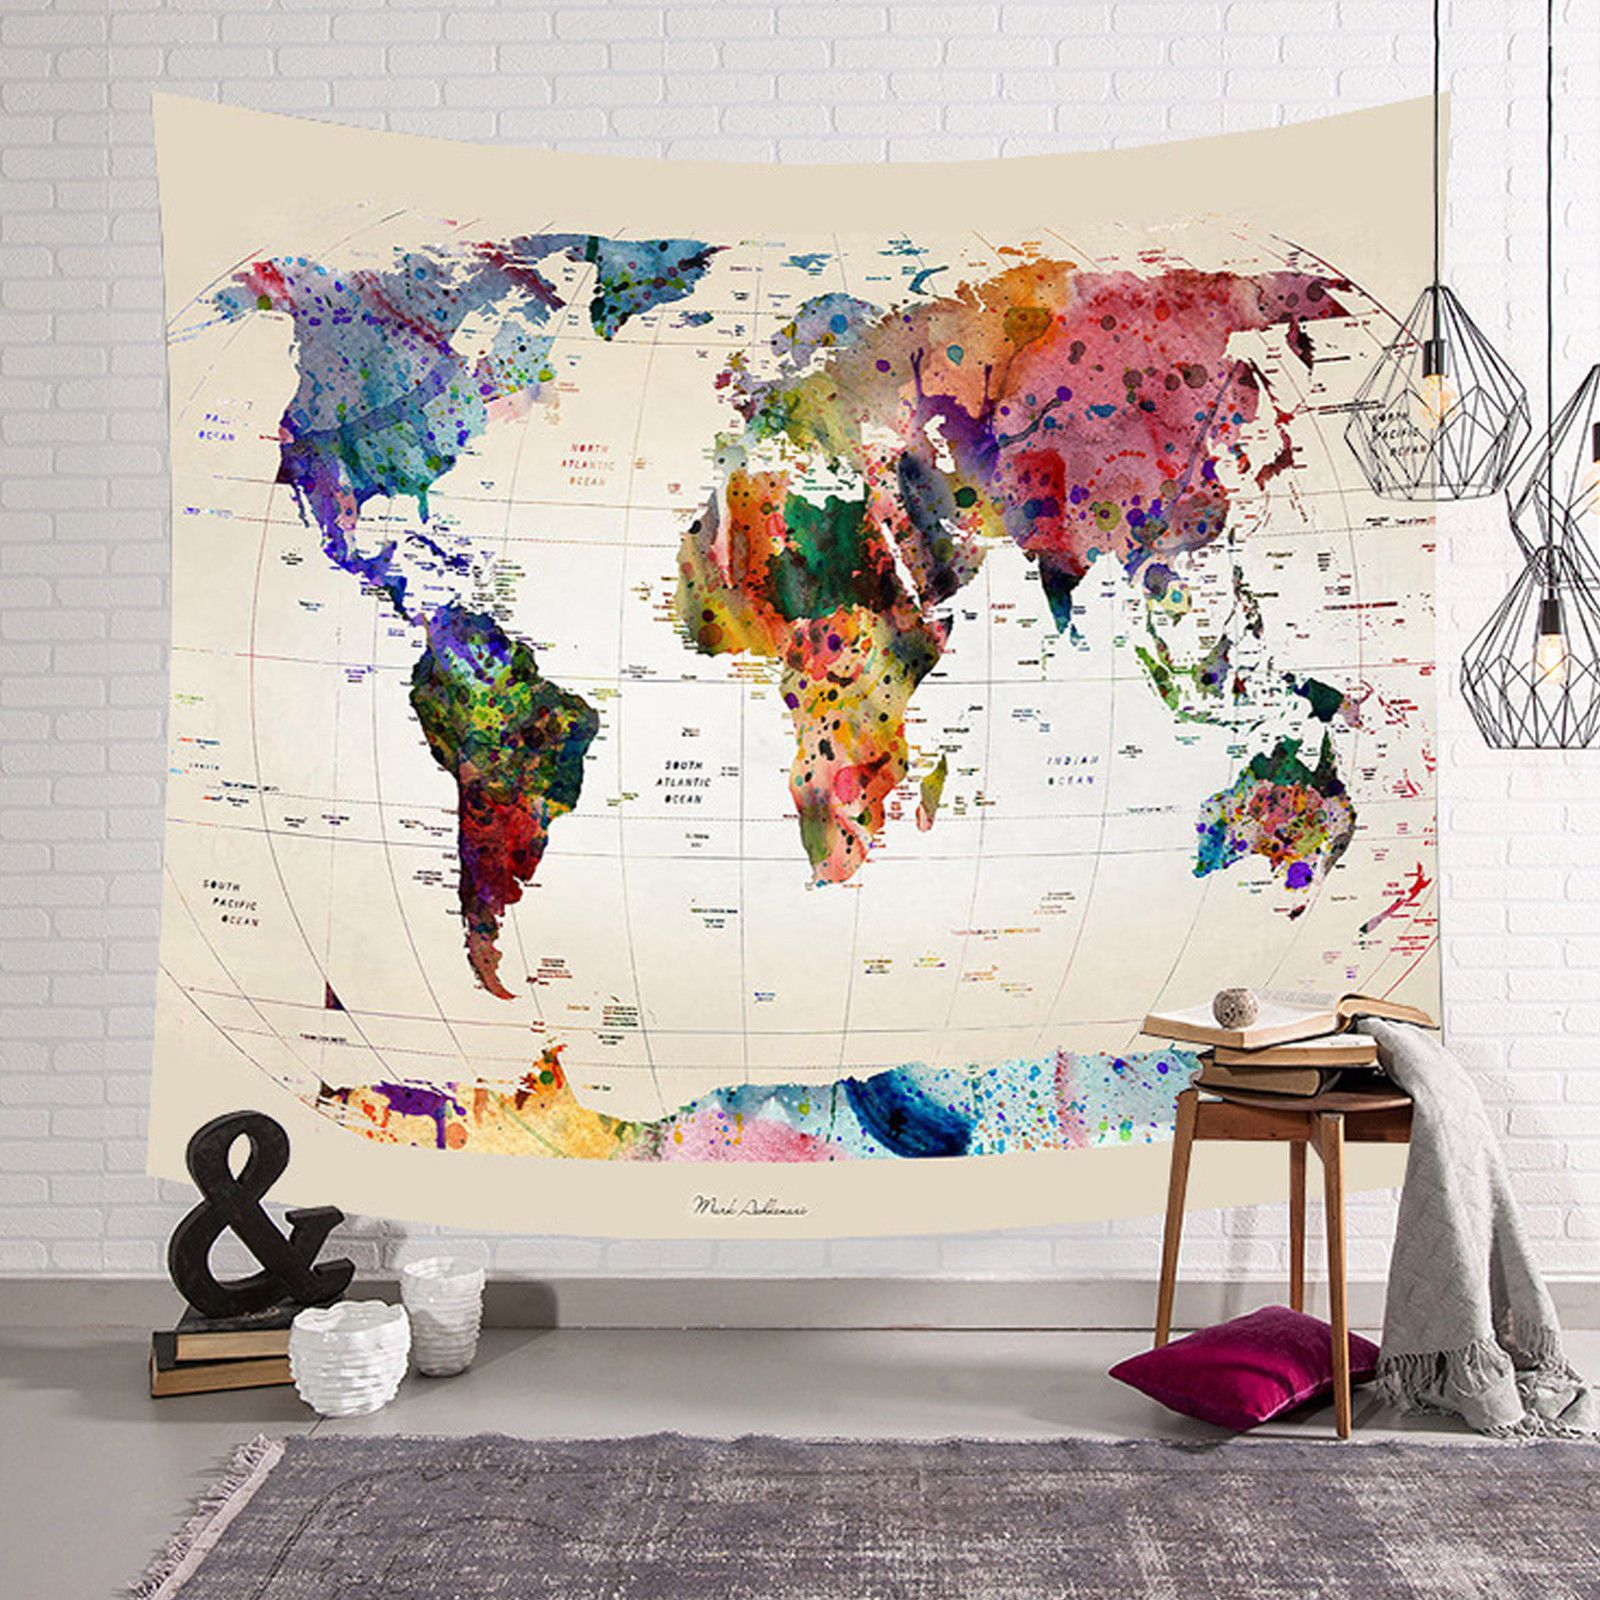 279 gbp world map indian tapestry wall hanging mandala throw 279 gbp world map indian tapestry wall hanging mandala throw hippie gypsy bohemian uk ebay home gumiabroncs Image collections